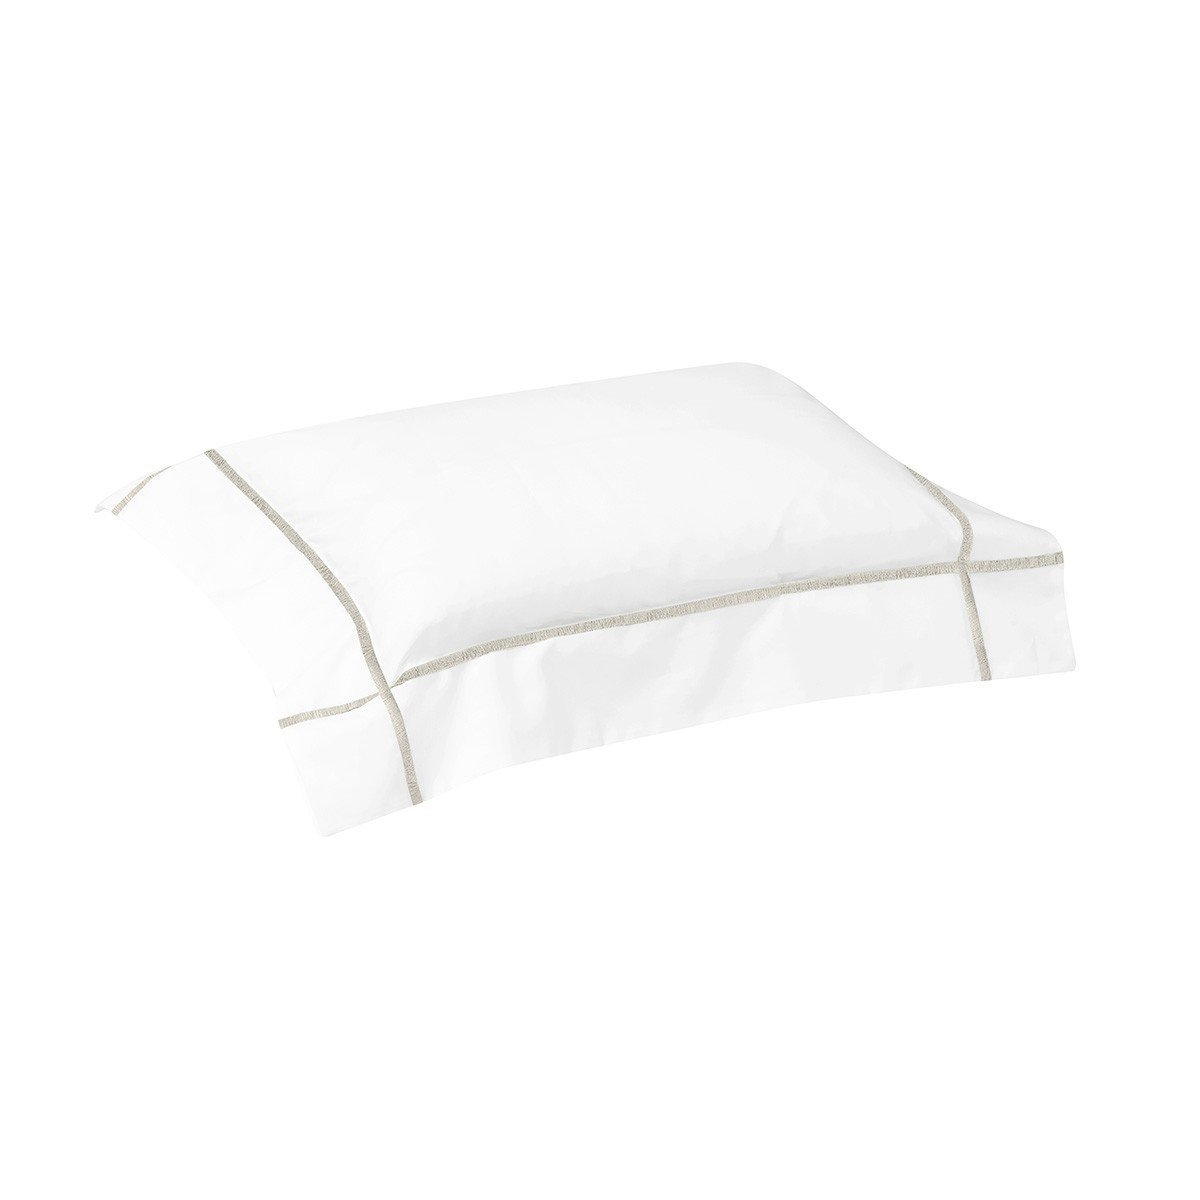 Athena Nacre Bedding Collection by Yves Delorme | Fig Linens - White and ivory boudoir sham